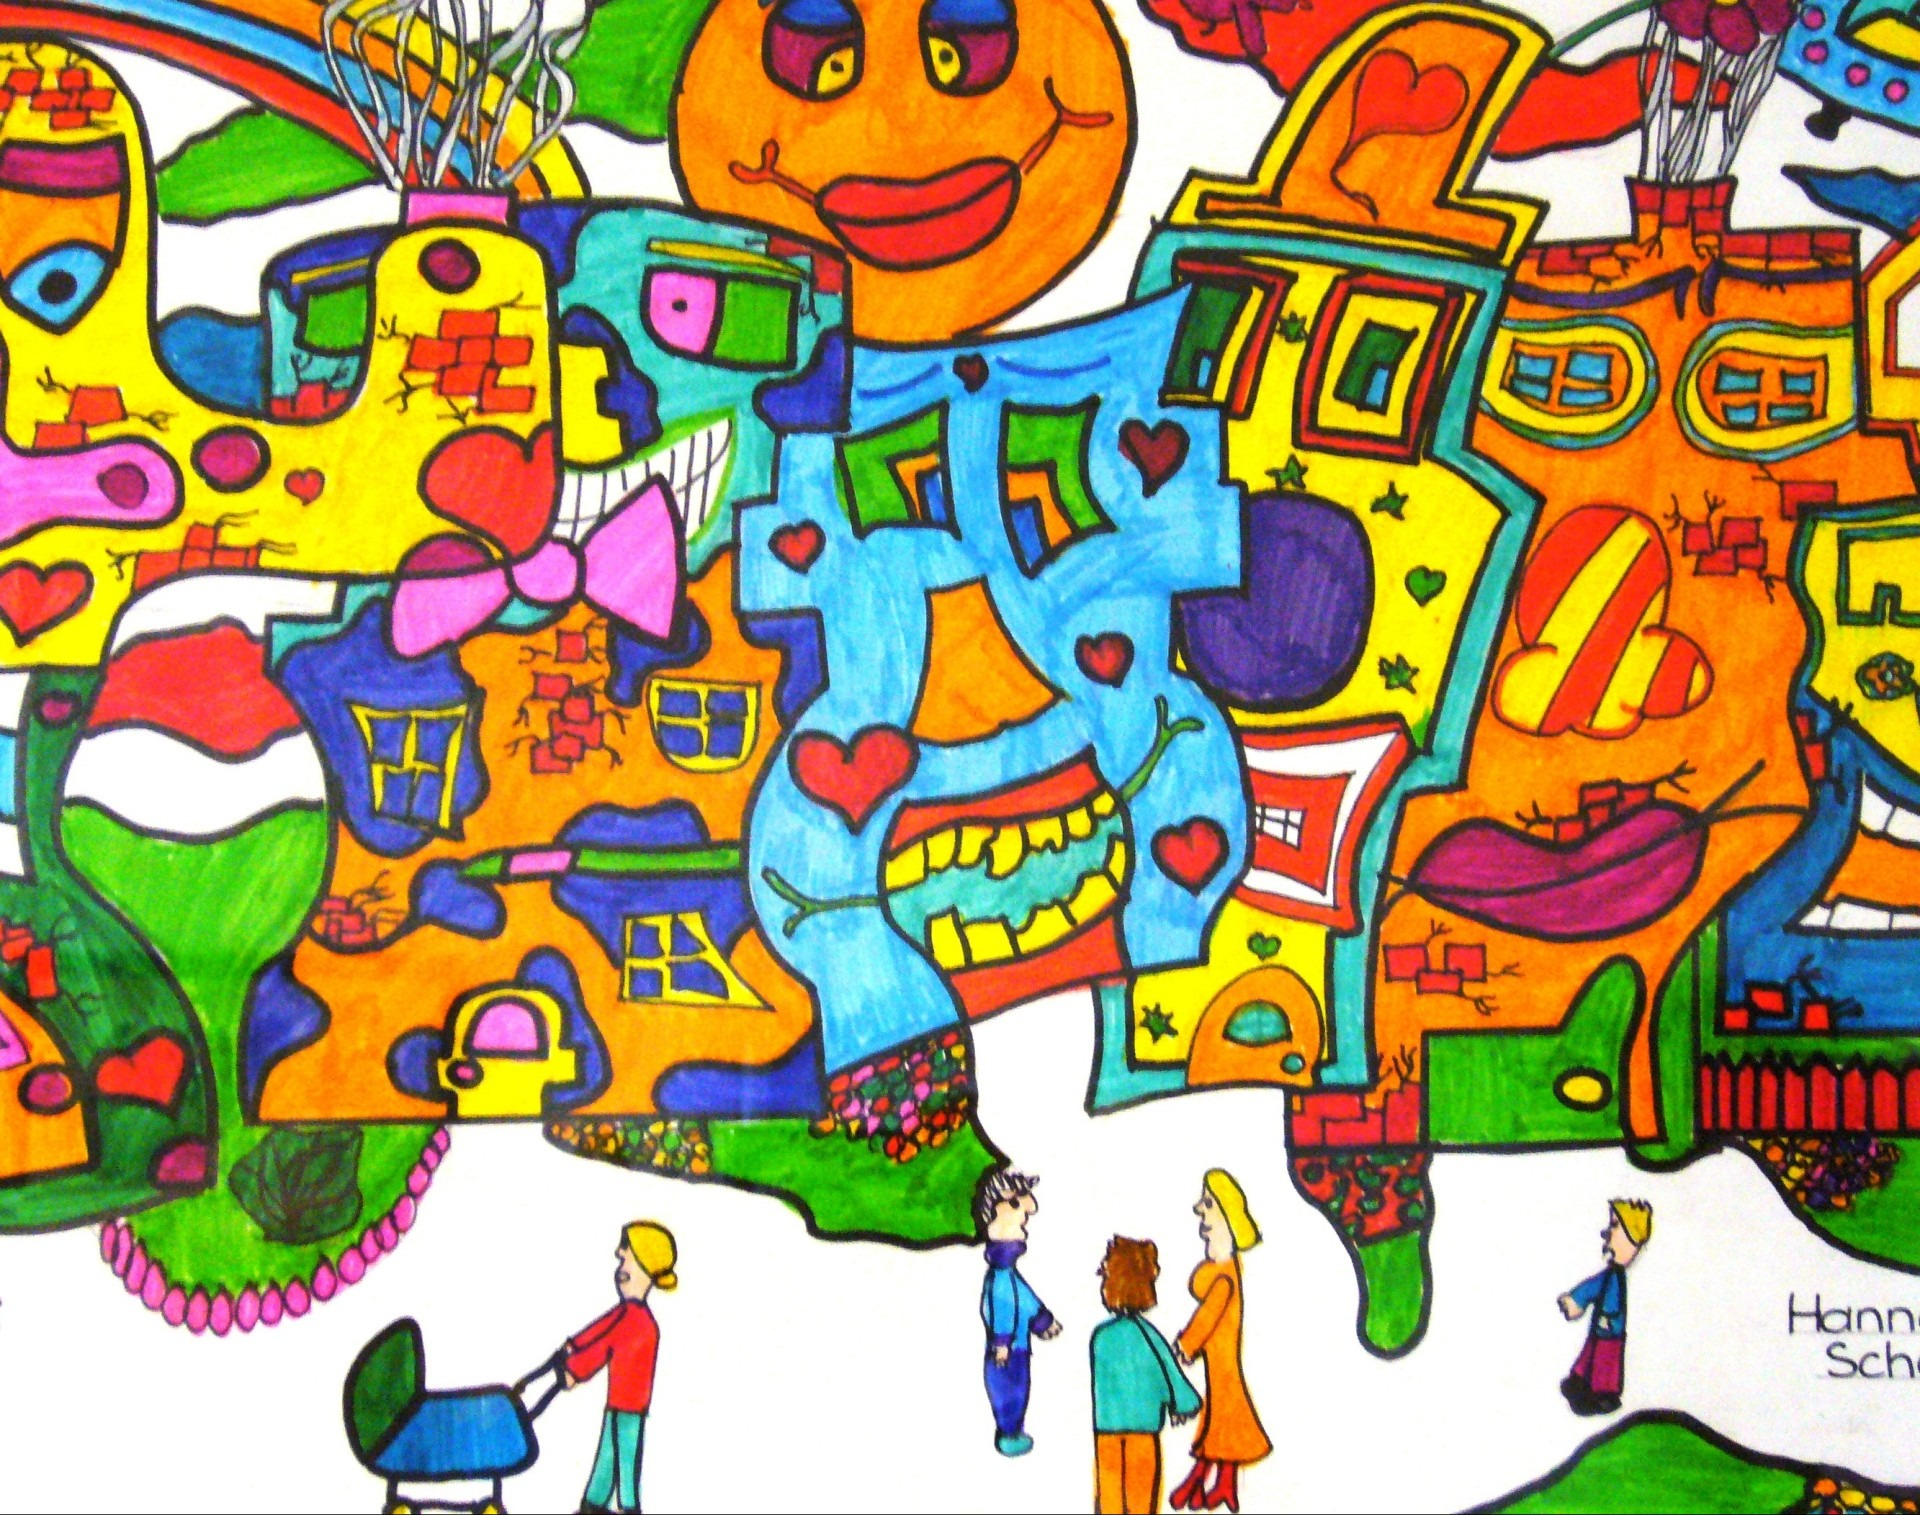 Paint clipart student painting Colorful painted clip cartoon colorful